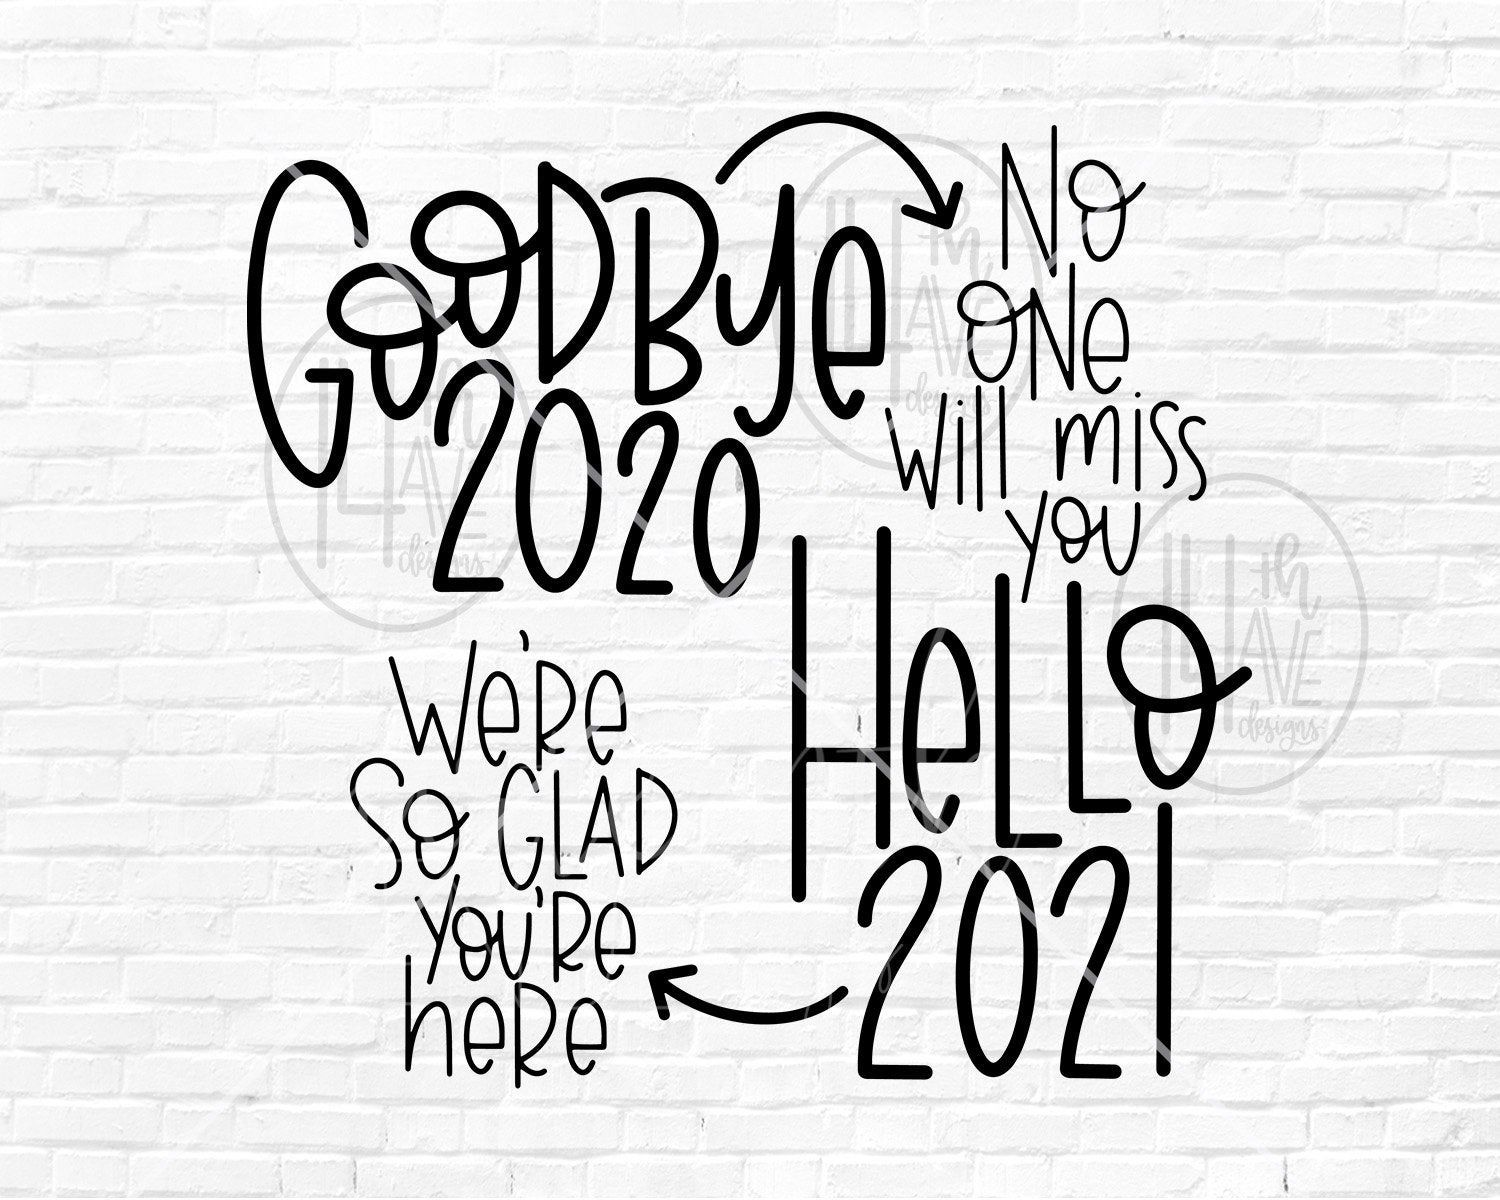 Goodbye 2020 Png Funny New Year S Hand Lettered Hand Drawn Sublimation New Year Png Happy New Year 2021 Png Quotes About New Year Happy New Year Calligraphy Funny New Years